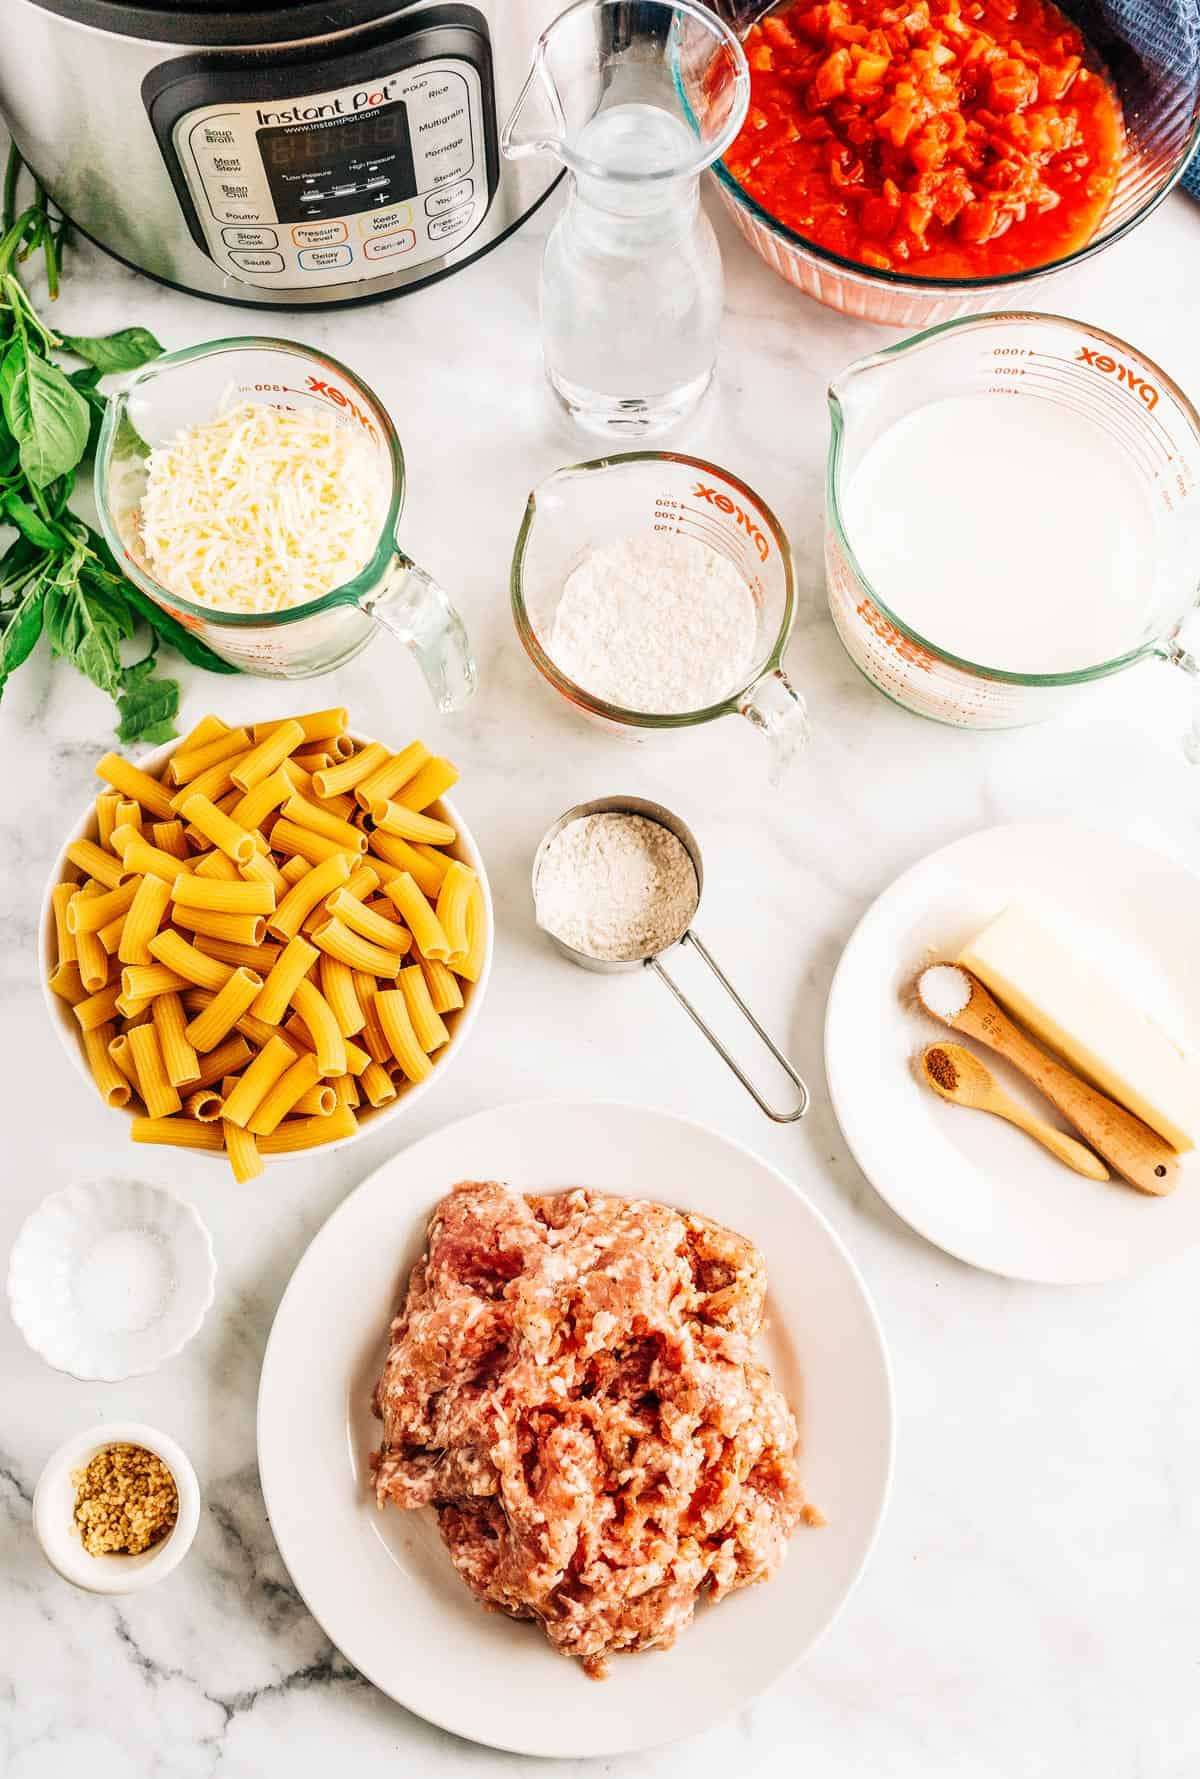 Overhead shot of ingredients for Pasta al Forno